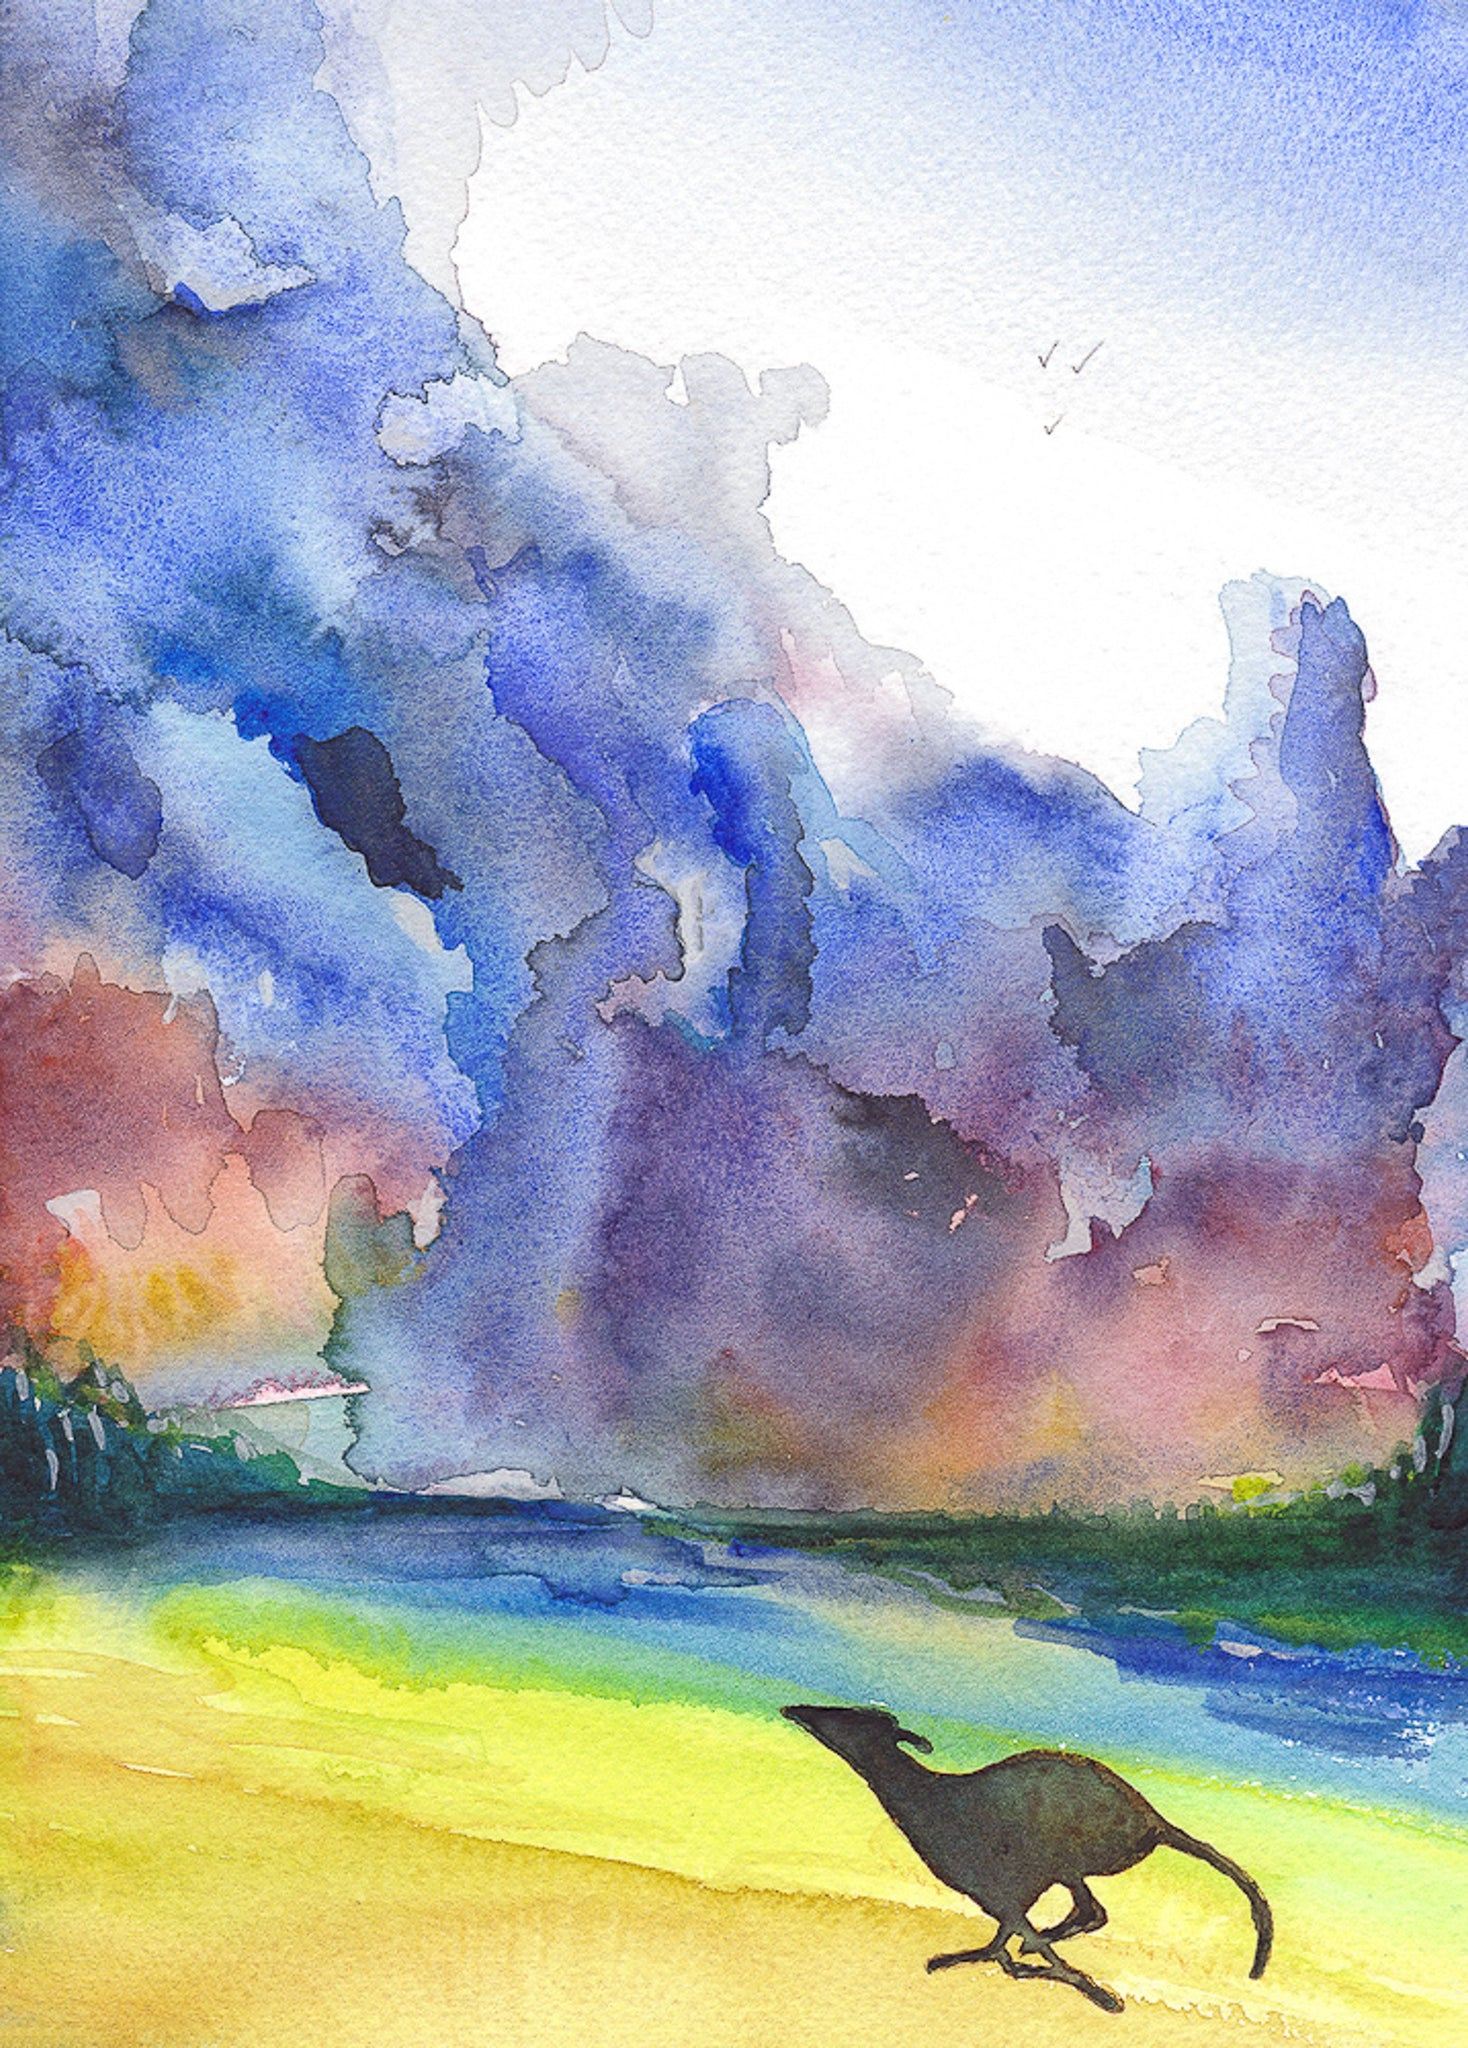 Original Water Colour By Mike Ramshaw